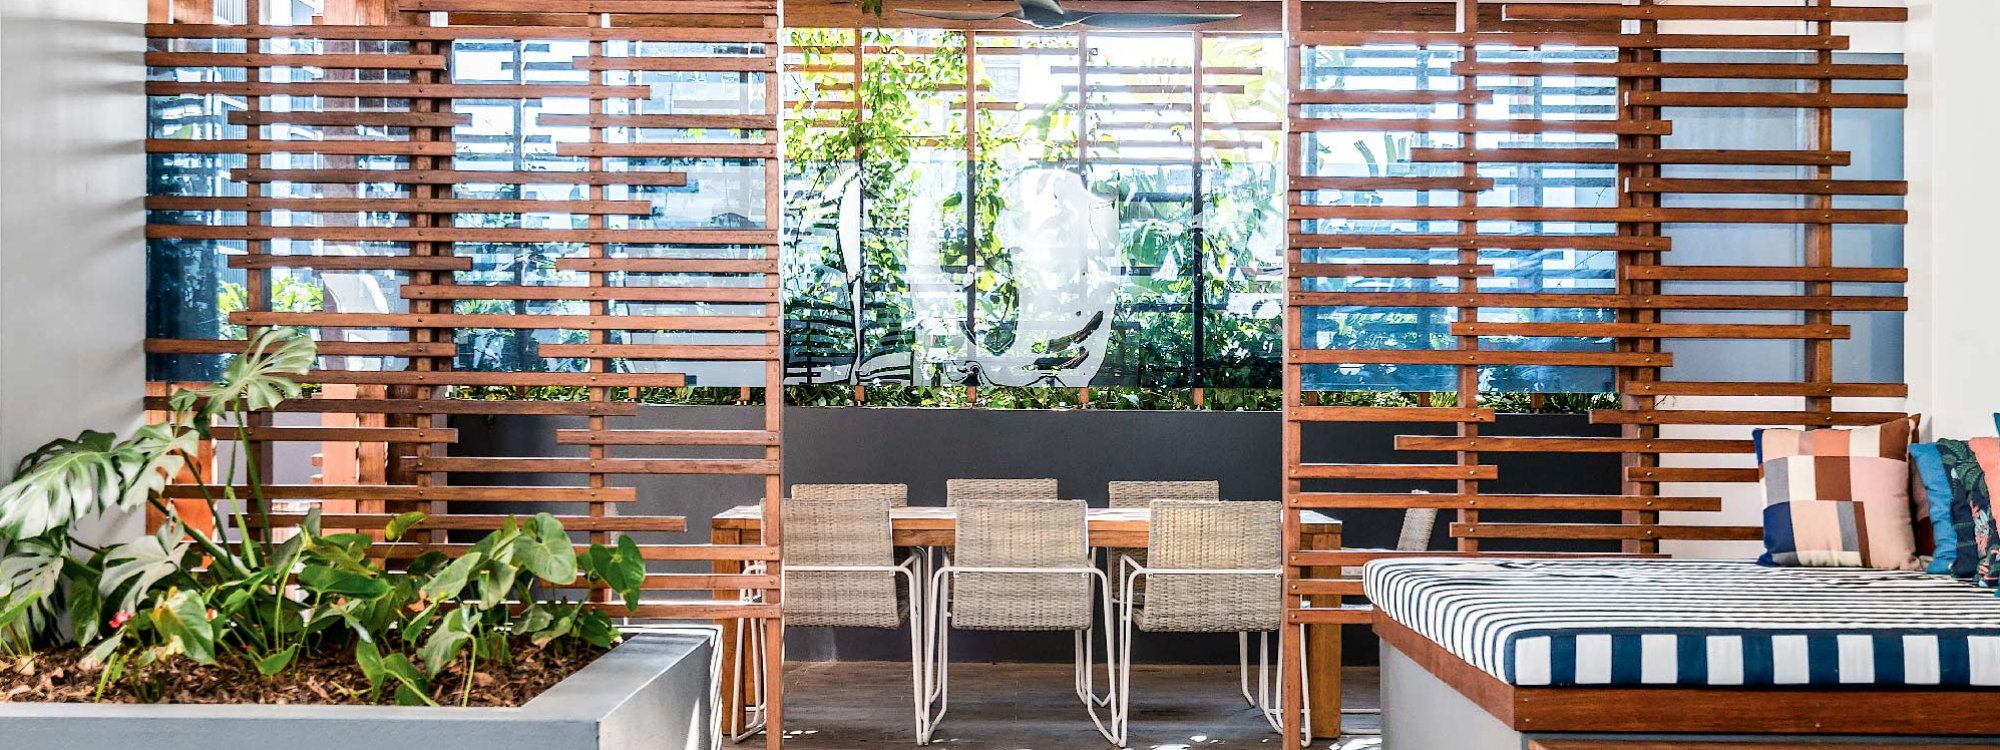 Adam and Eve - Brisbane - Common Area Outdoor Seating